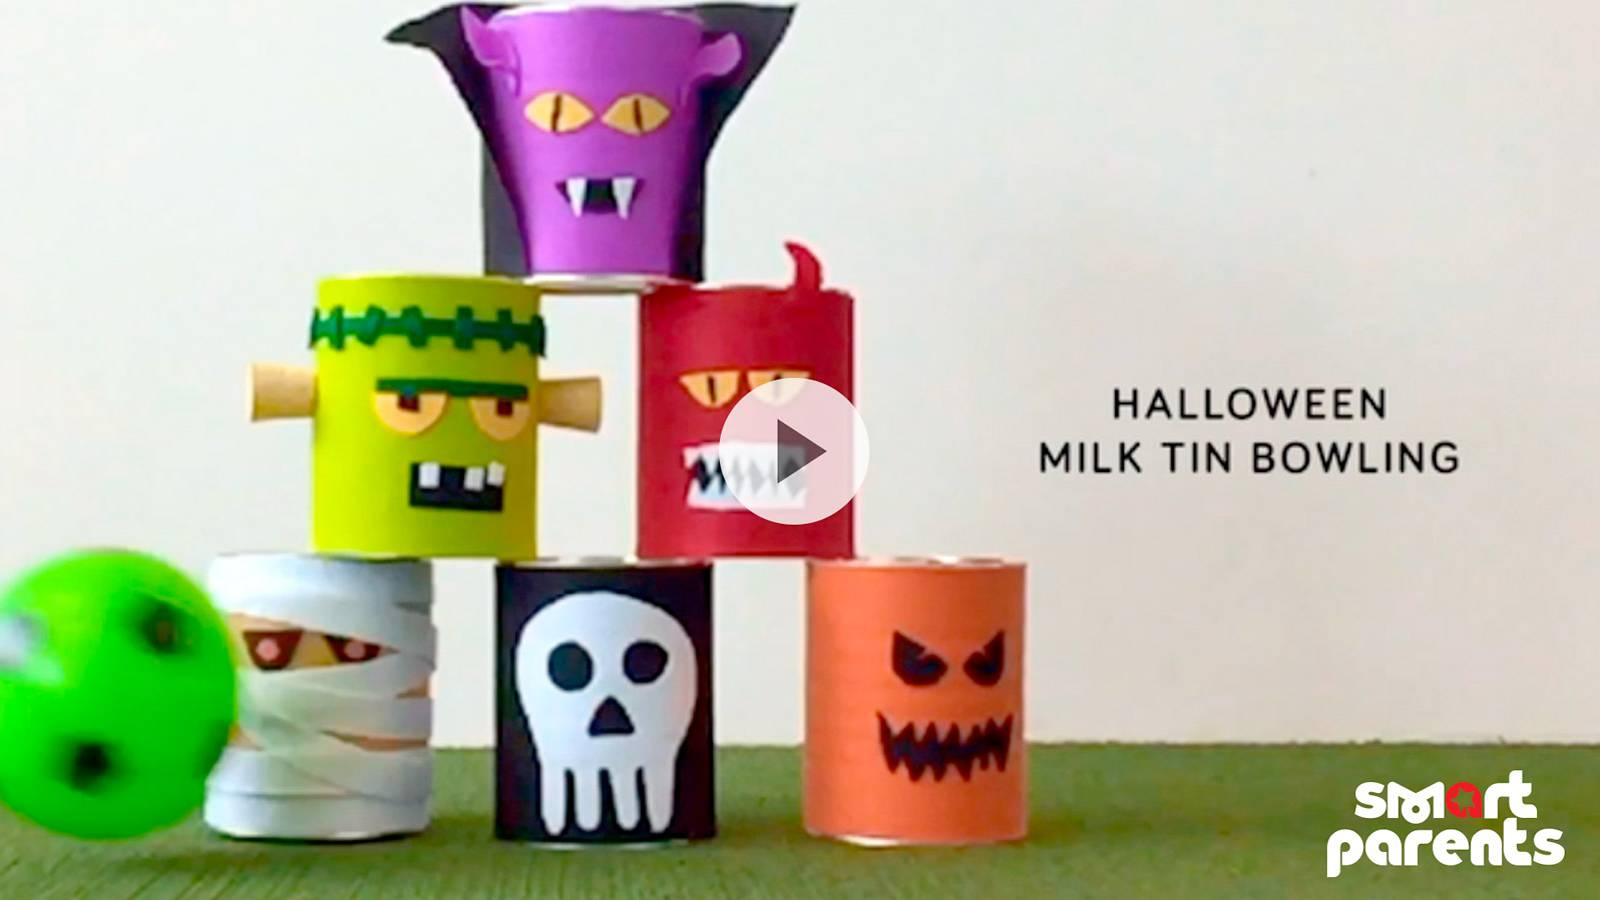 VIDEO-Friso_Halloween-Milk-Tins (1)